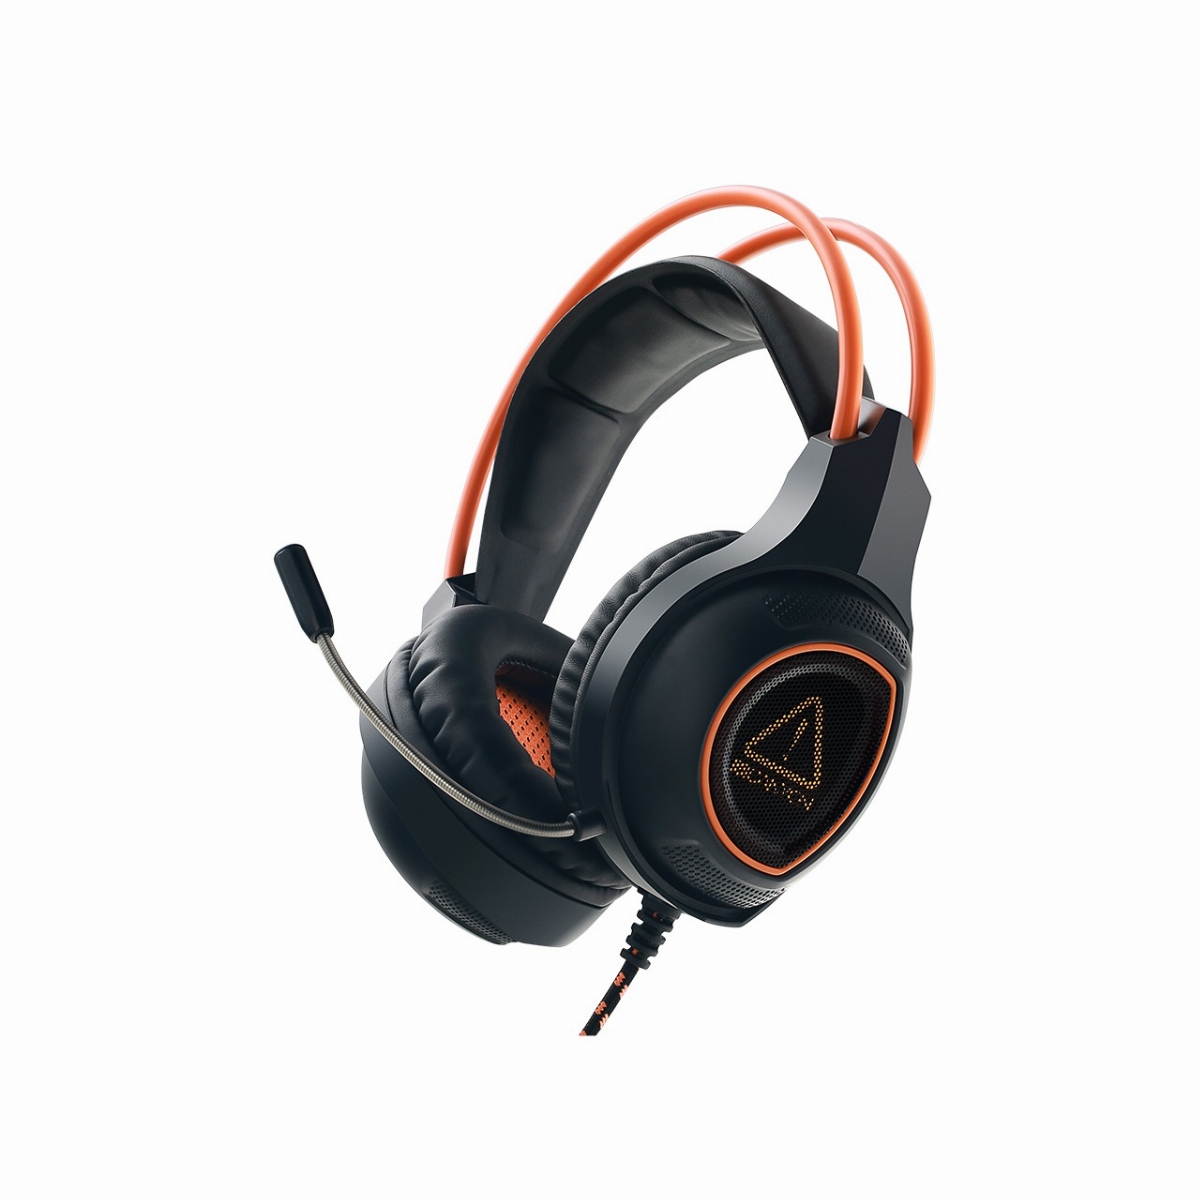 Геймърски слушалки CANYON Nightfall 7.1 USB Gaming Headset CND-SGHS7